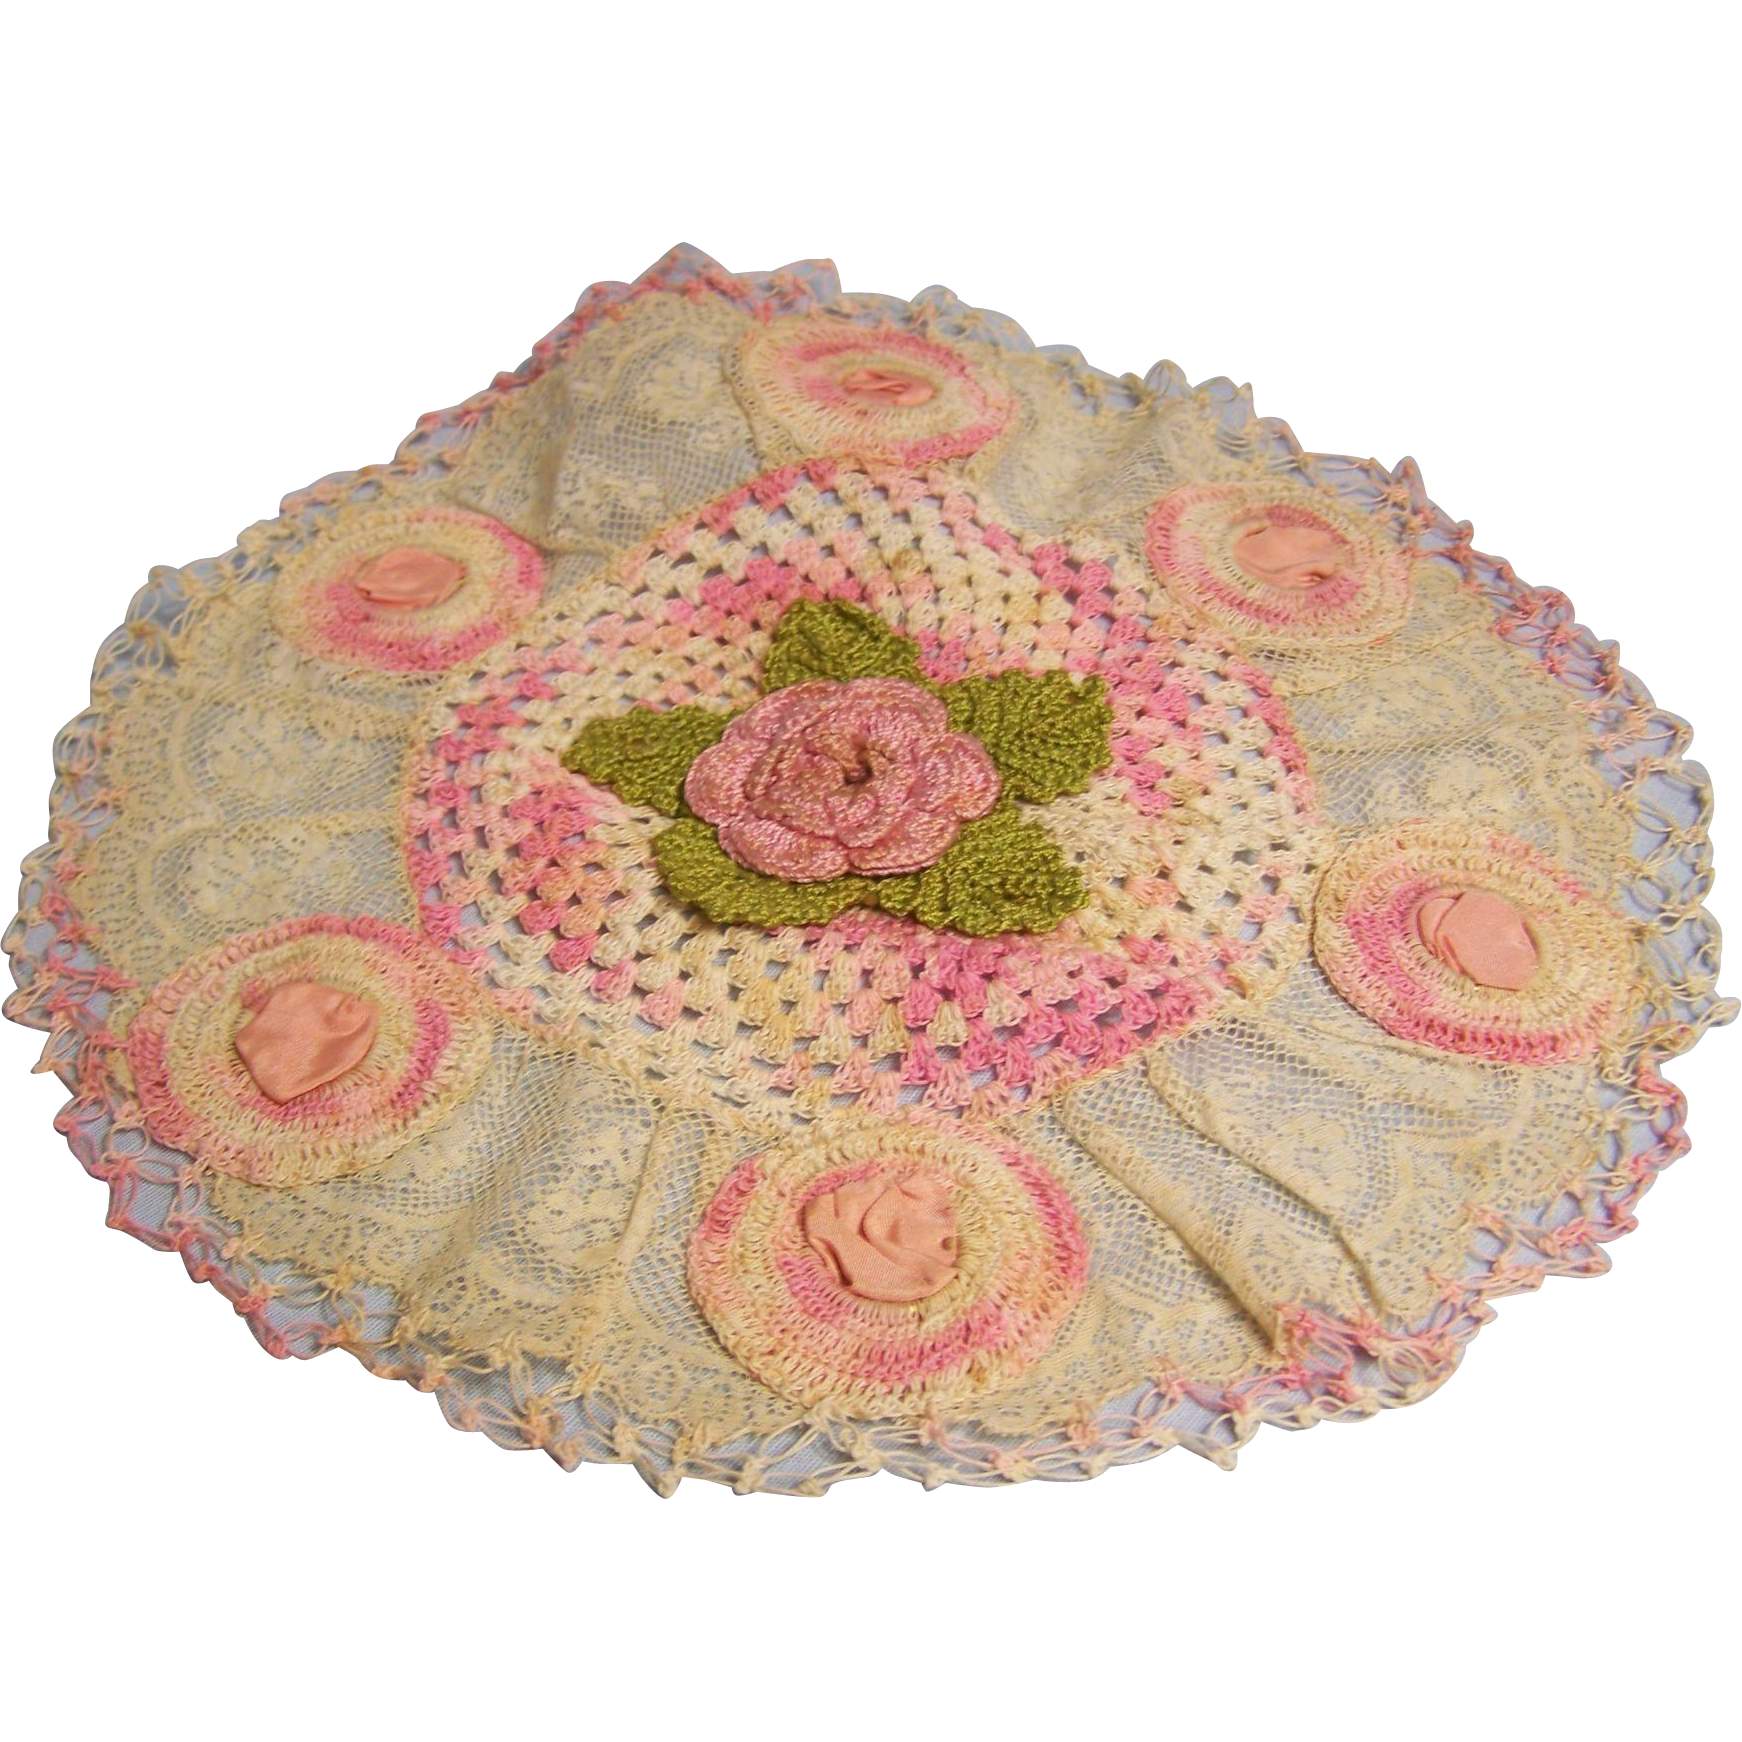 Doily transparent pink. Lace trimmed crochet with